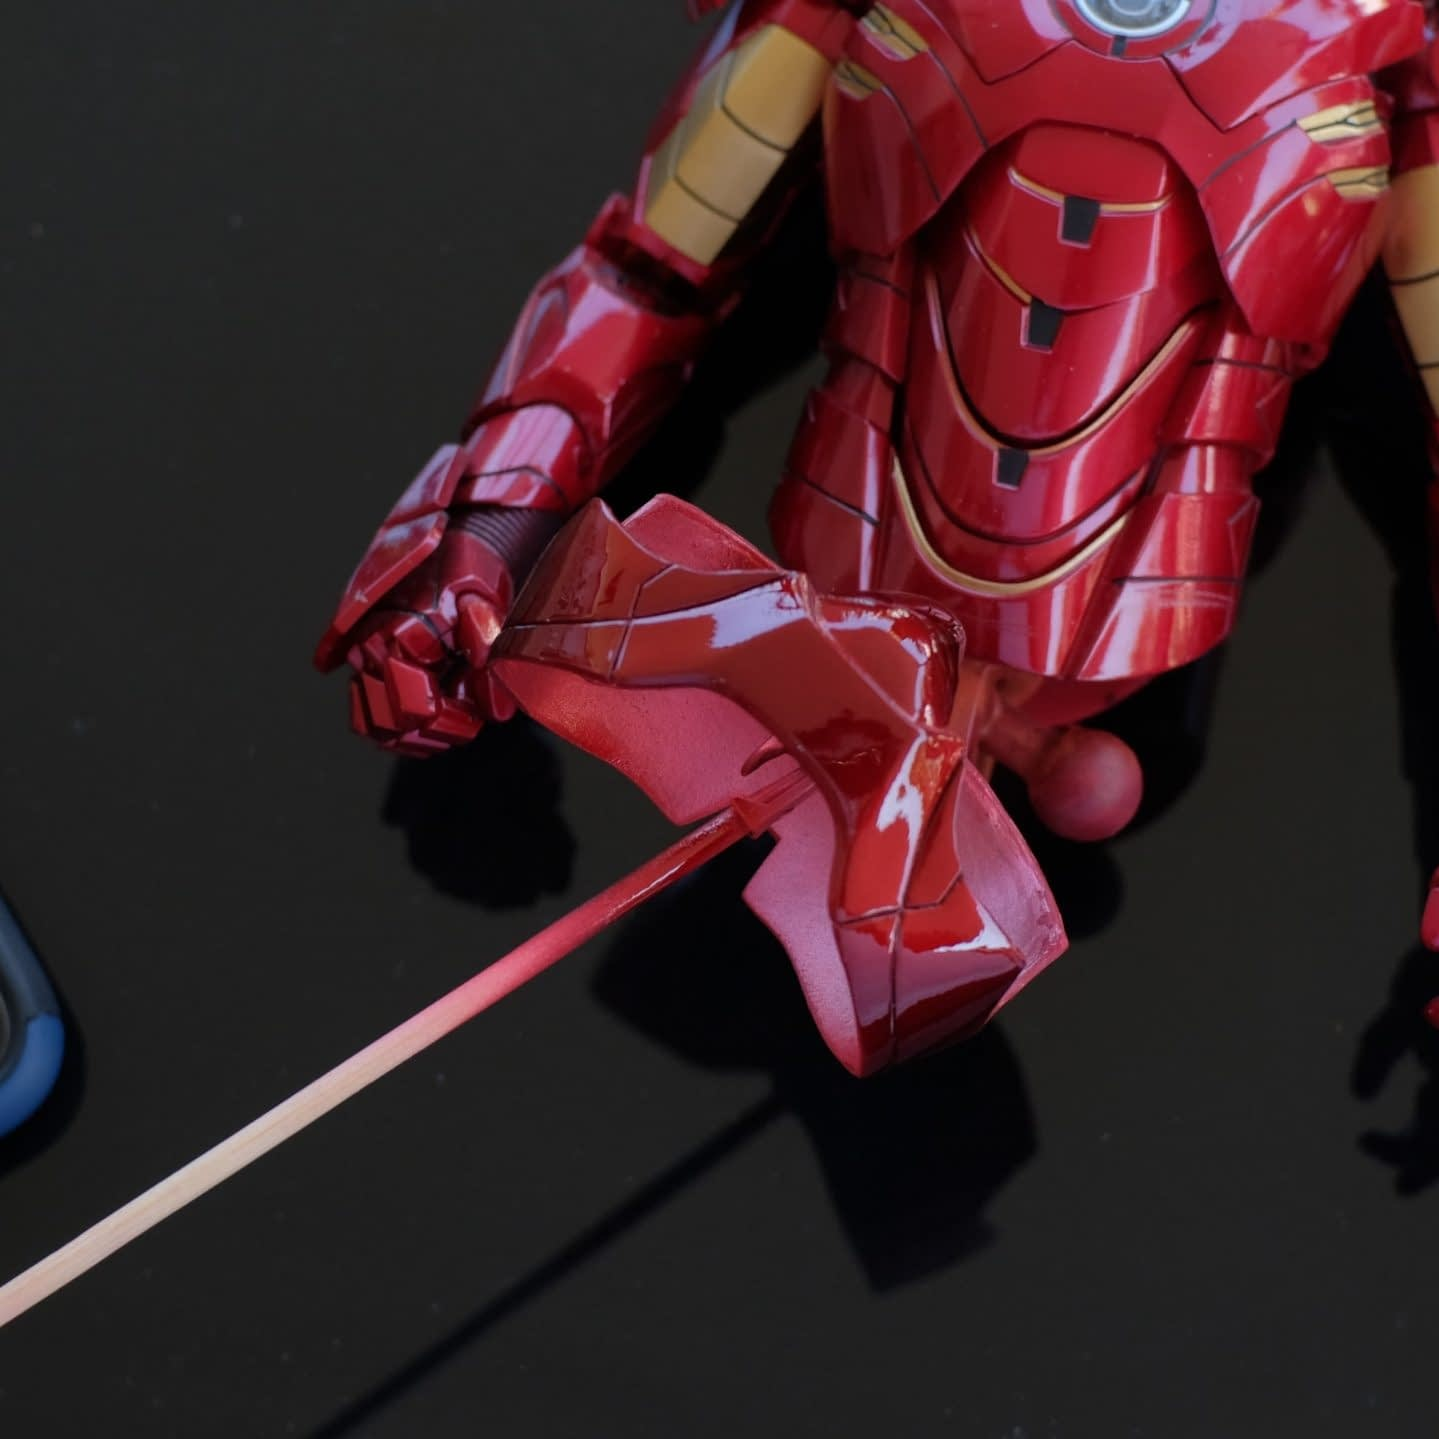 How to fix HT's Iron Man pink panty issue 39